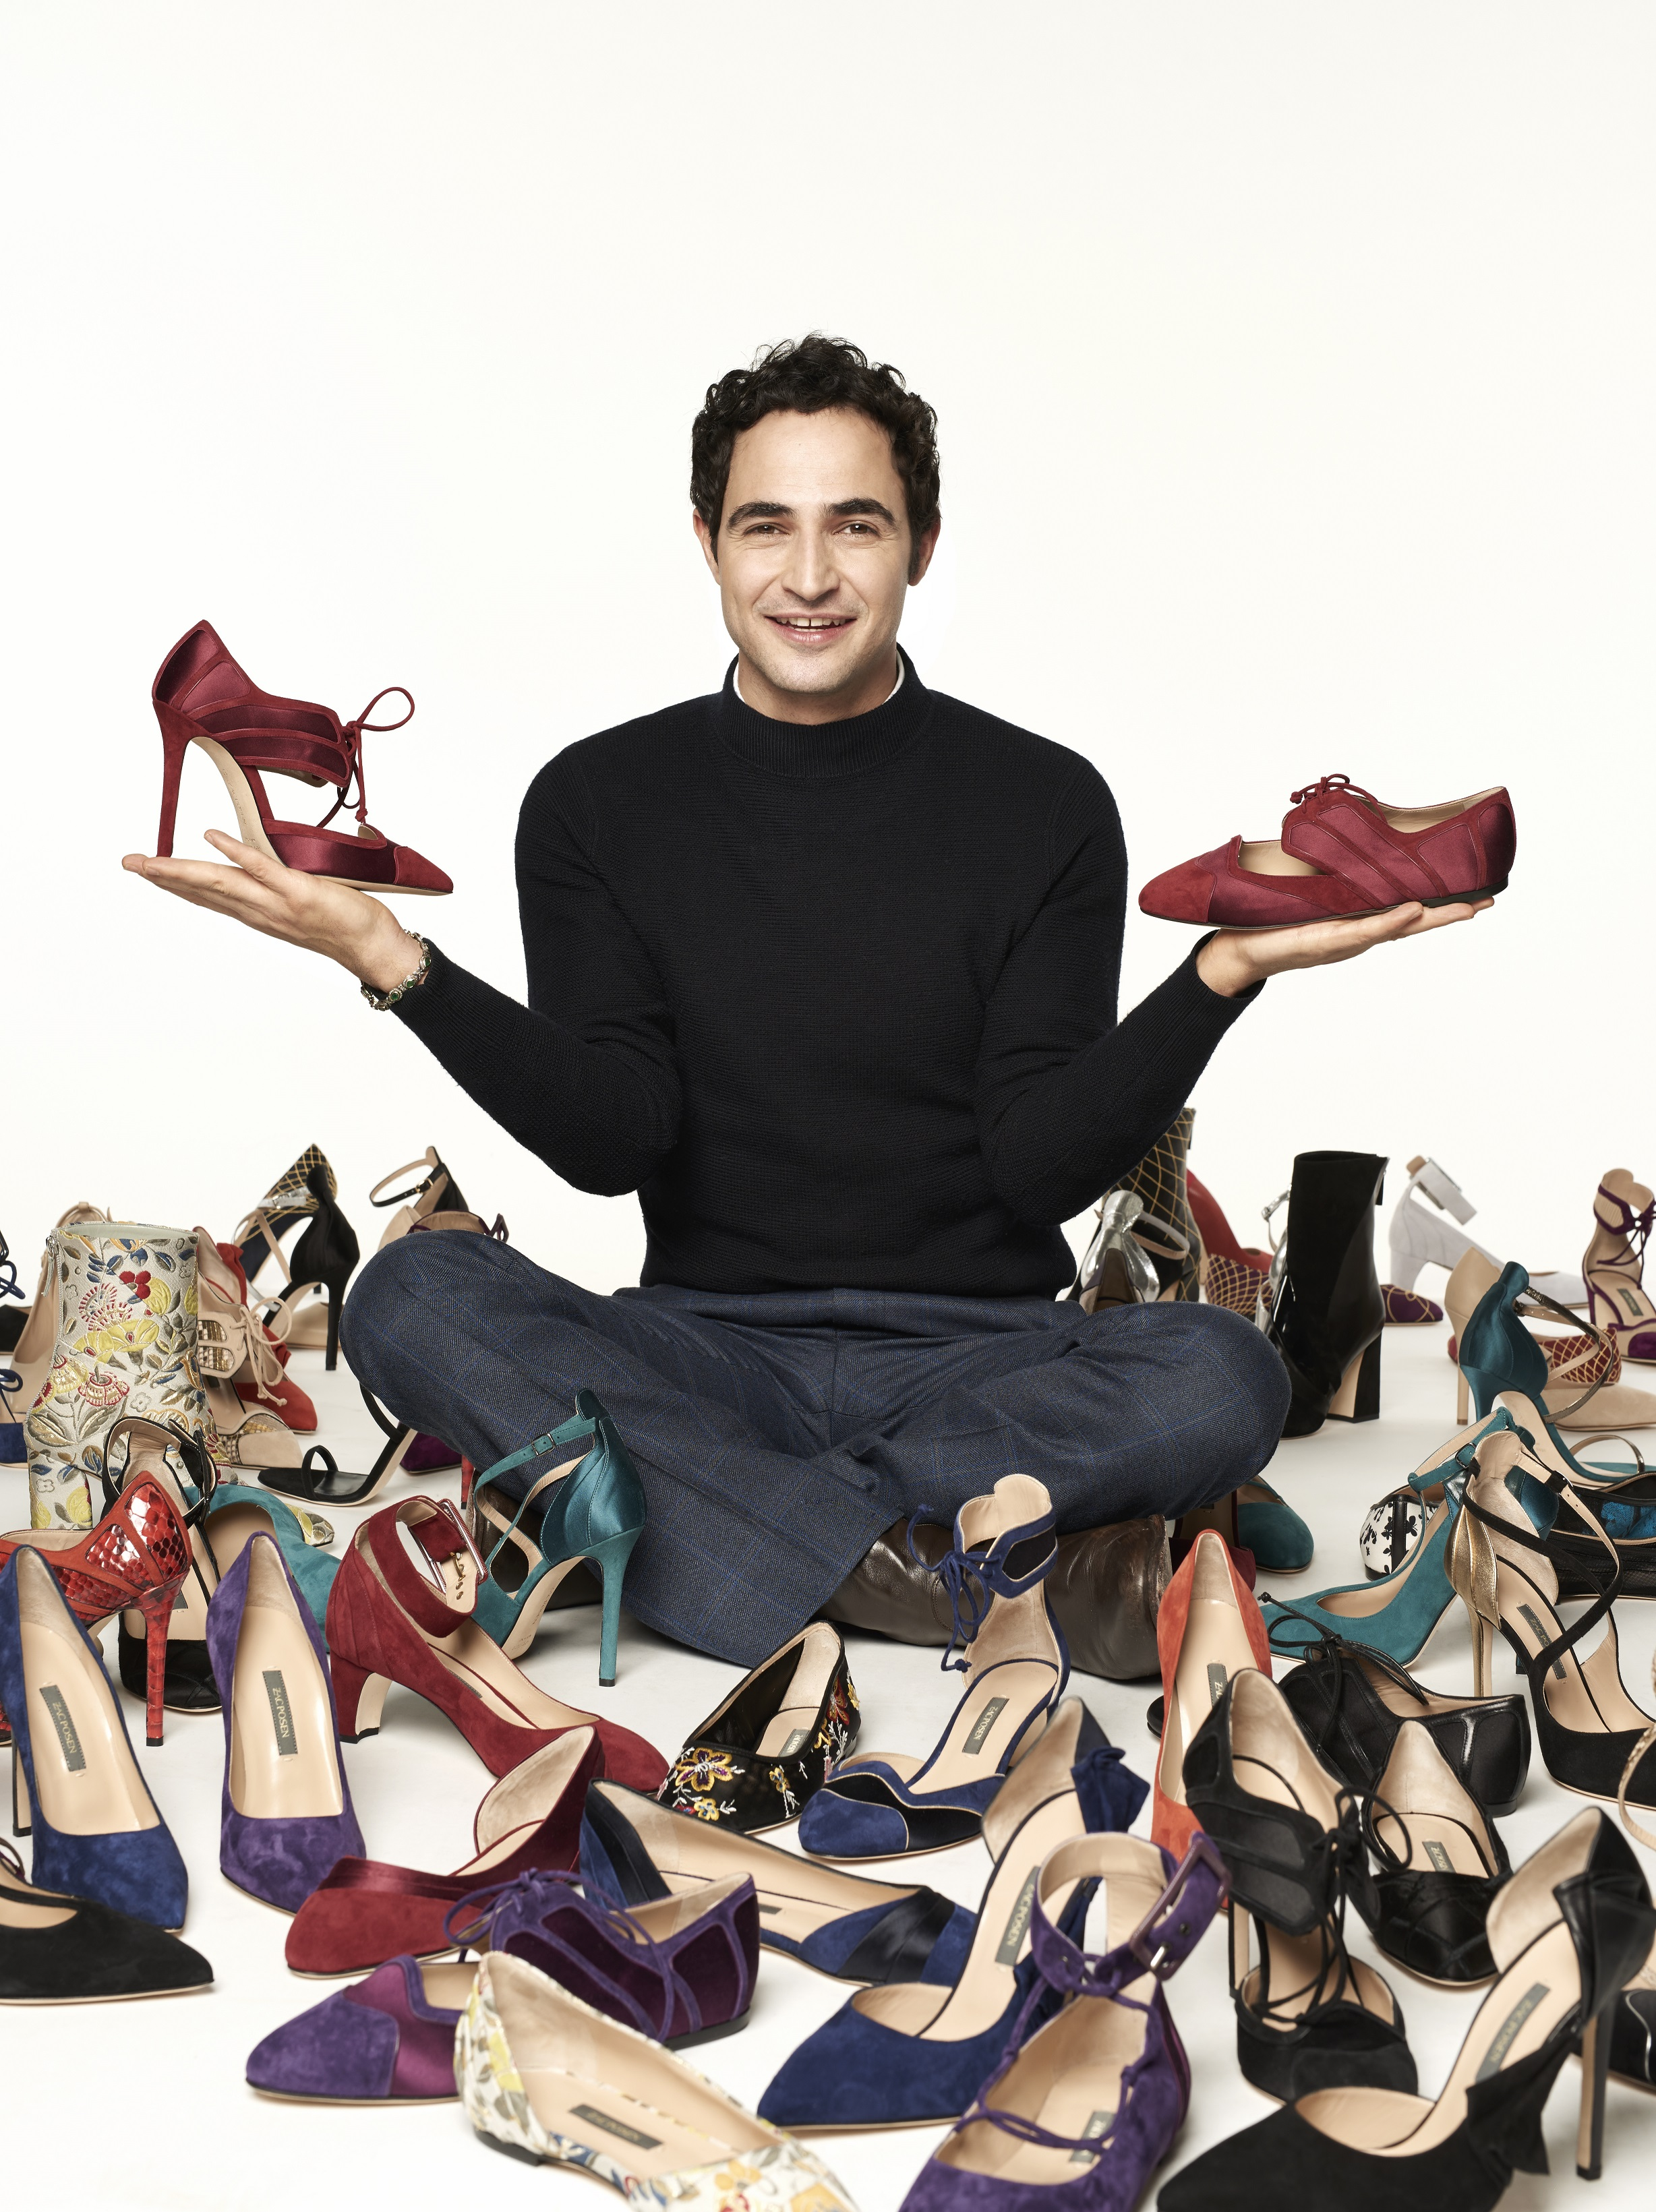 zac_posen_shoes.jpg